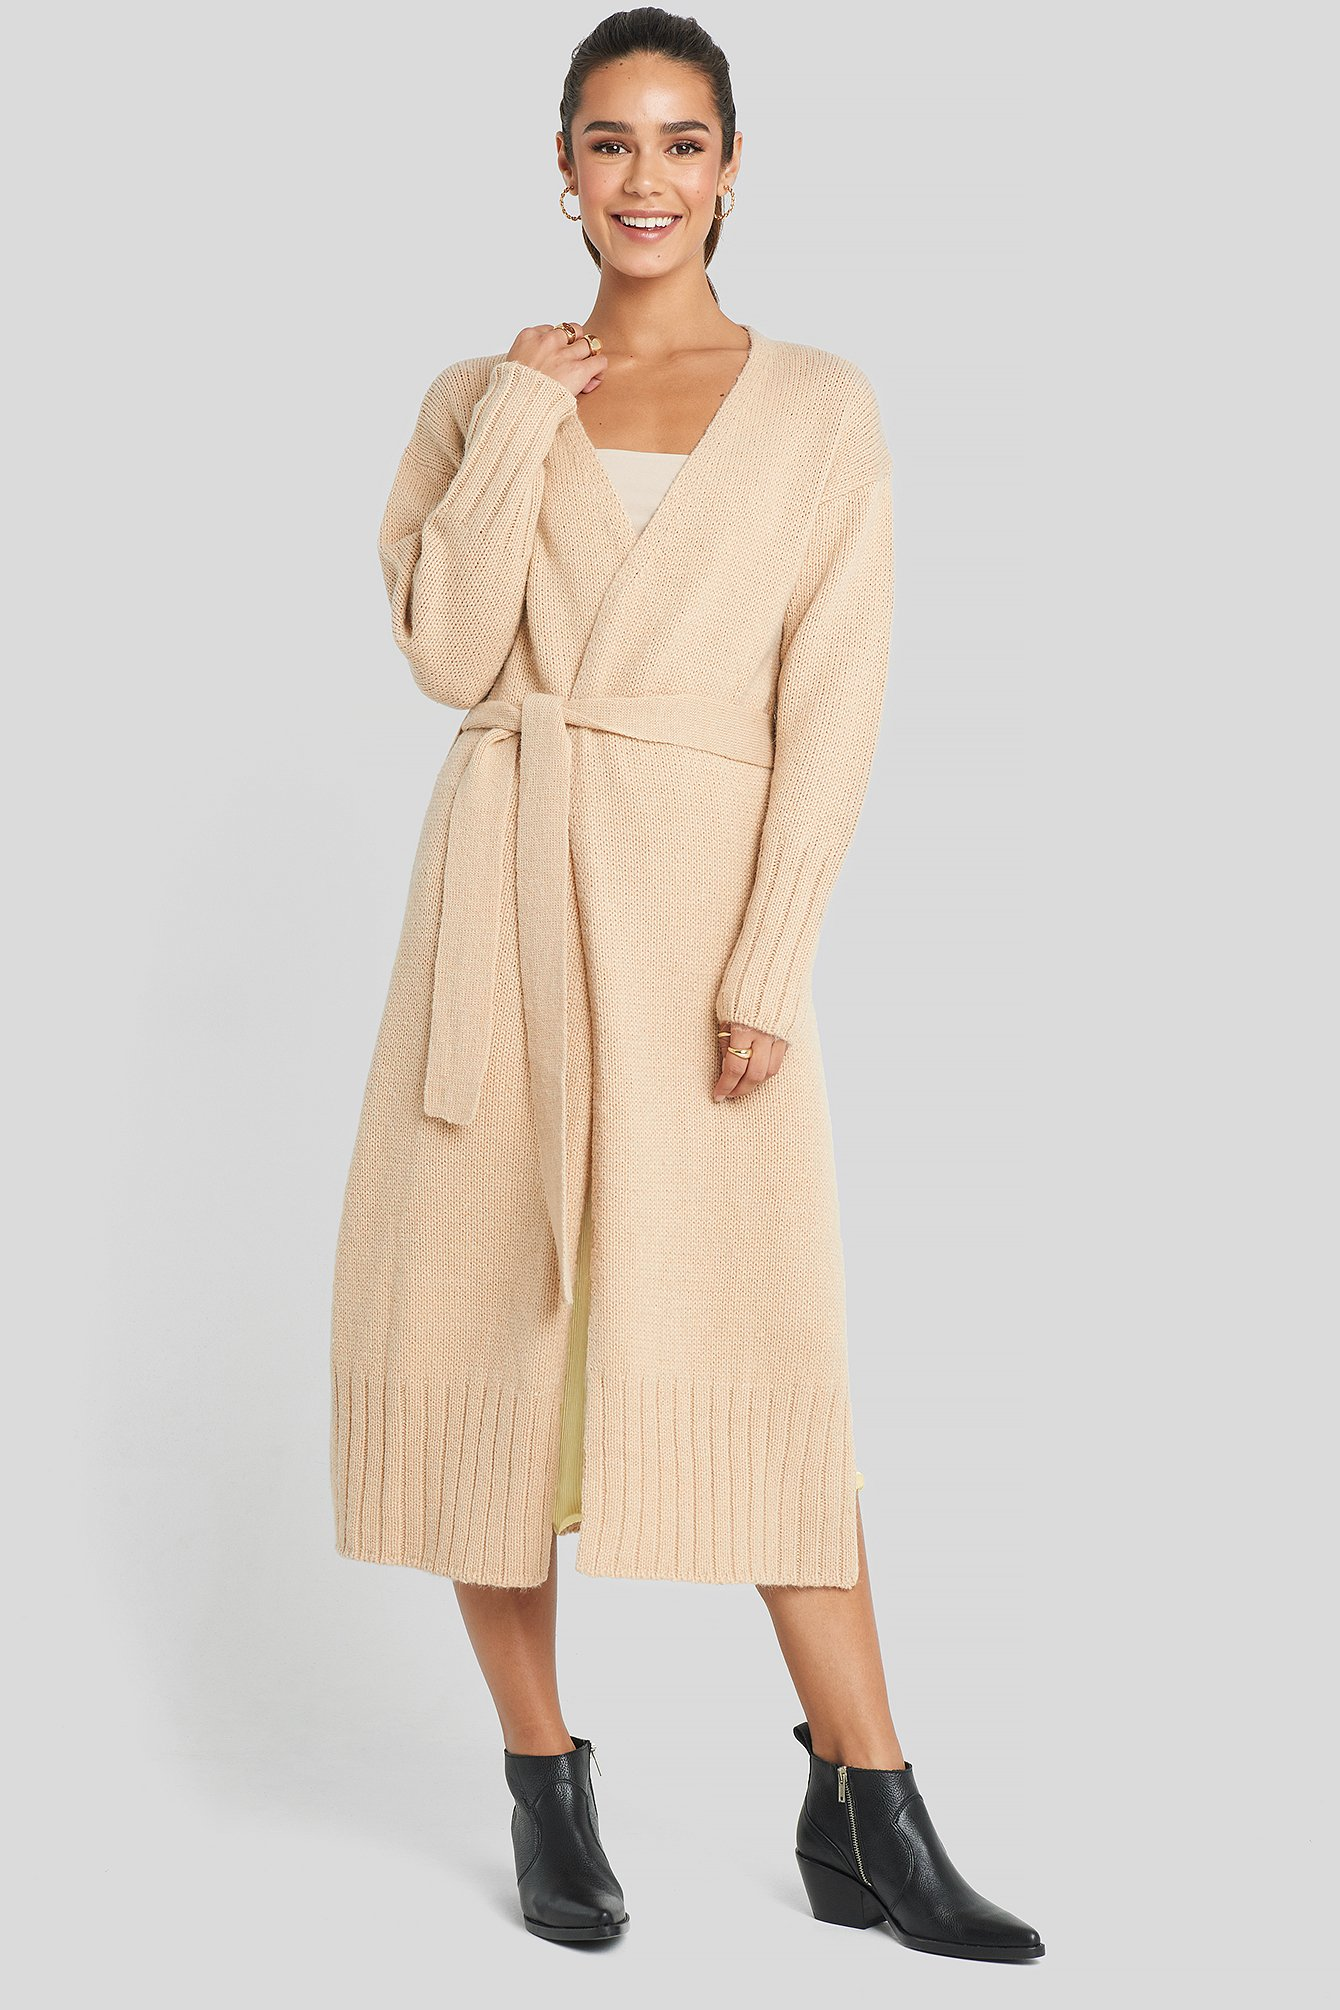 Belted Side Slits Long Cardigan Beige by Na Kd Trend